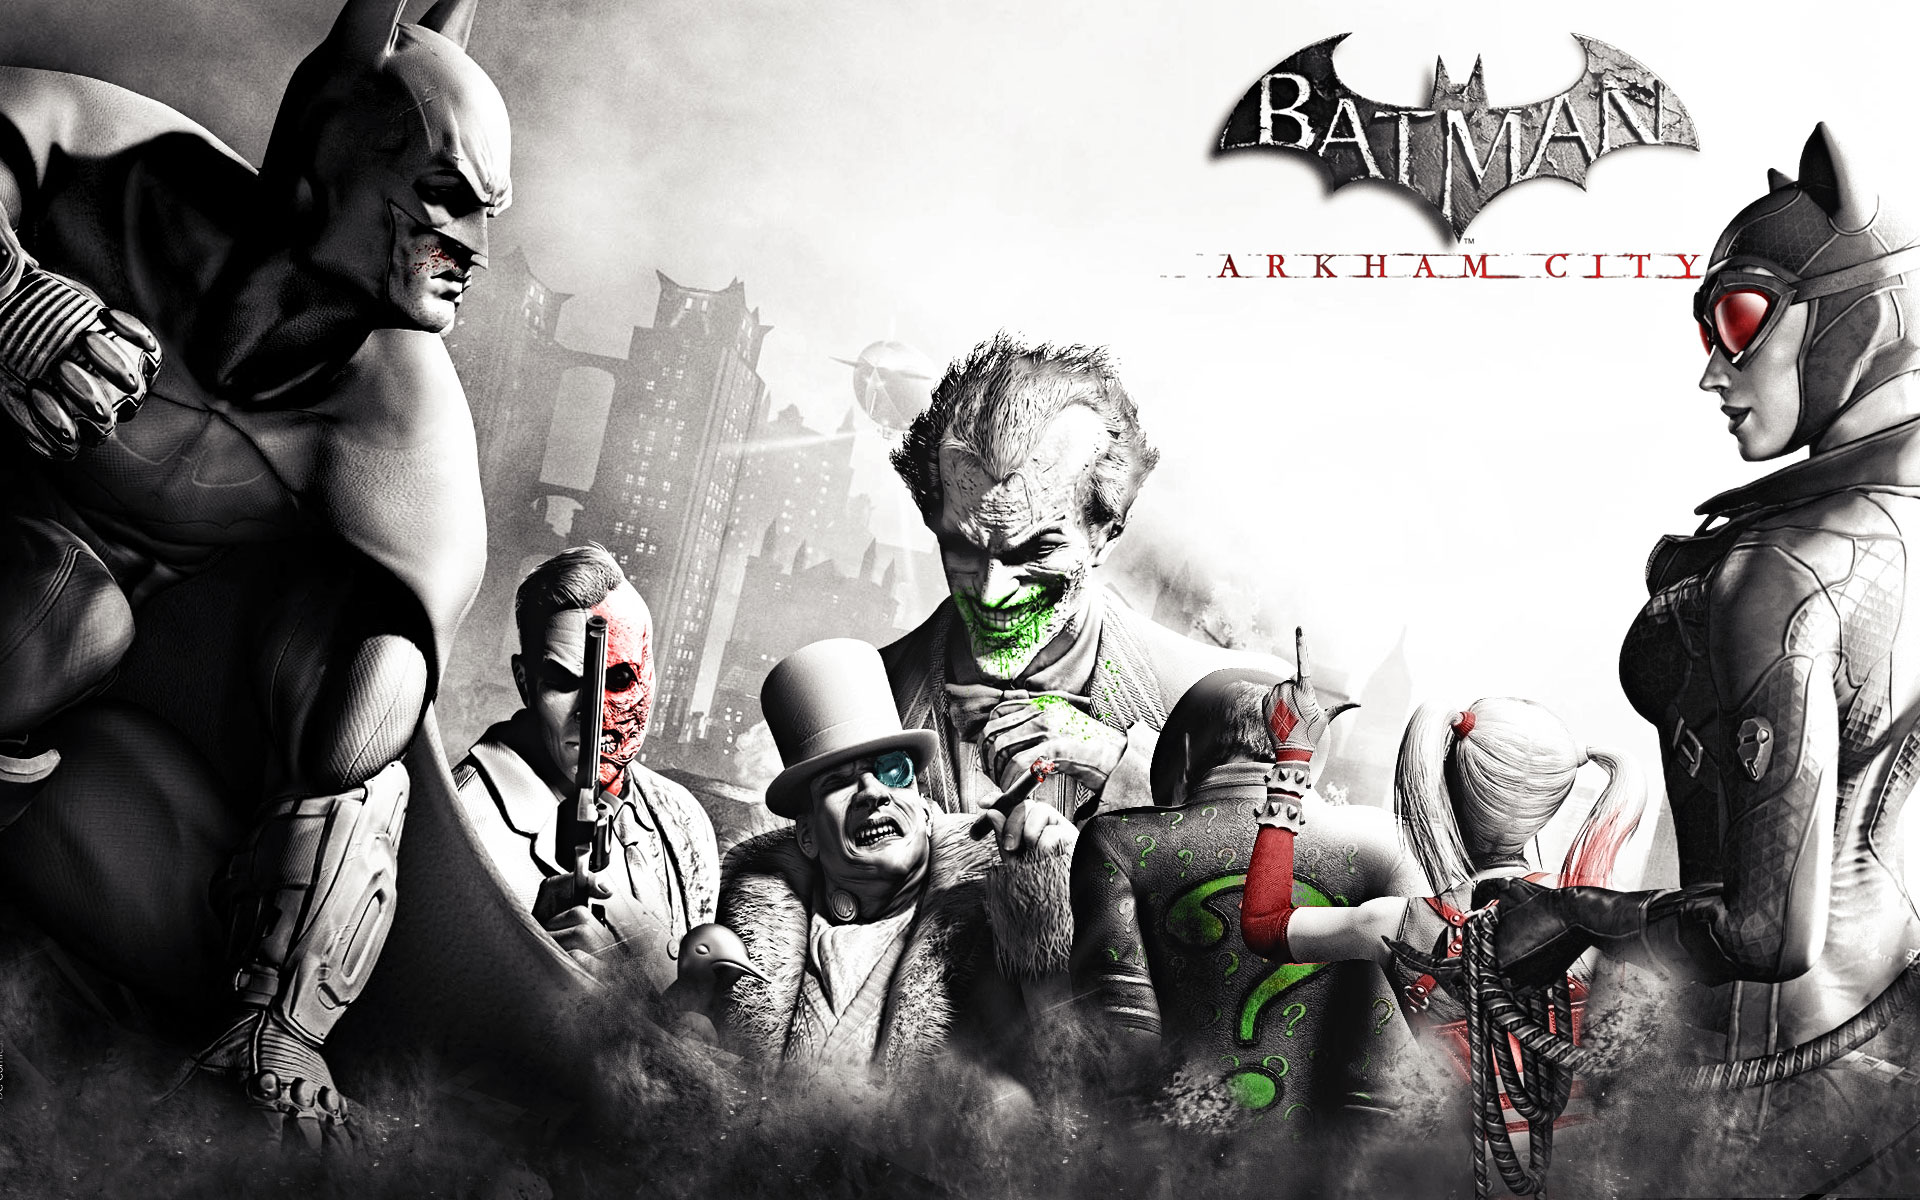 batman arkham city wallpaper by outlawninja d4ng0kxjpg 1920x1200